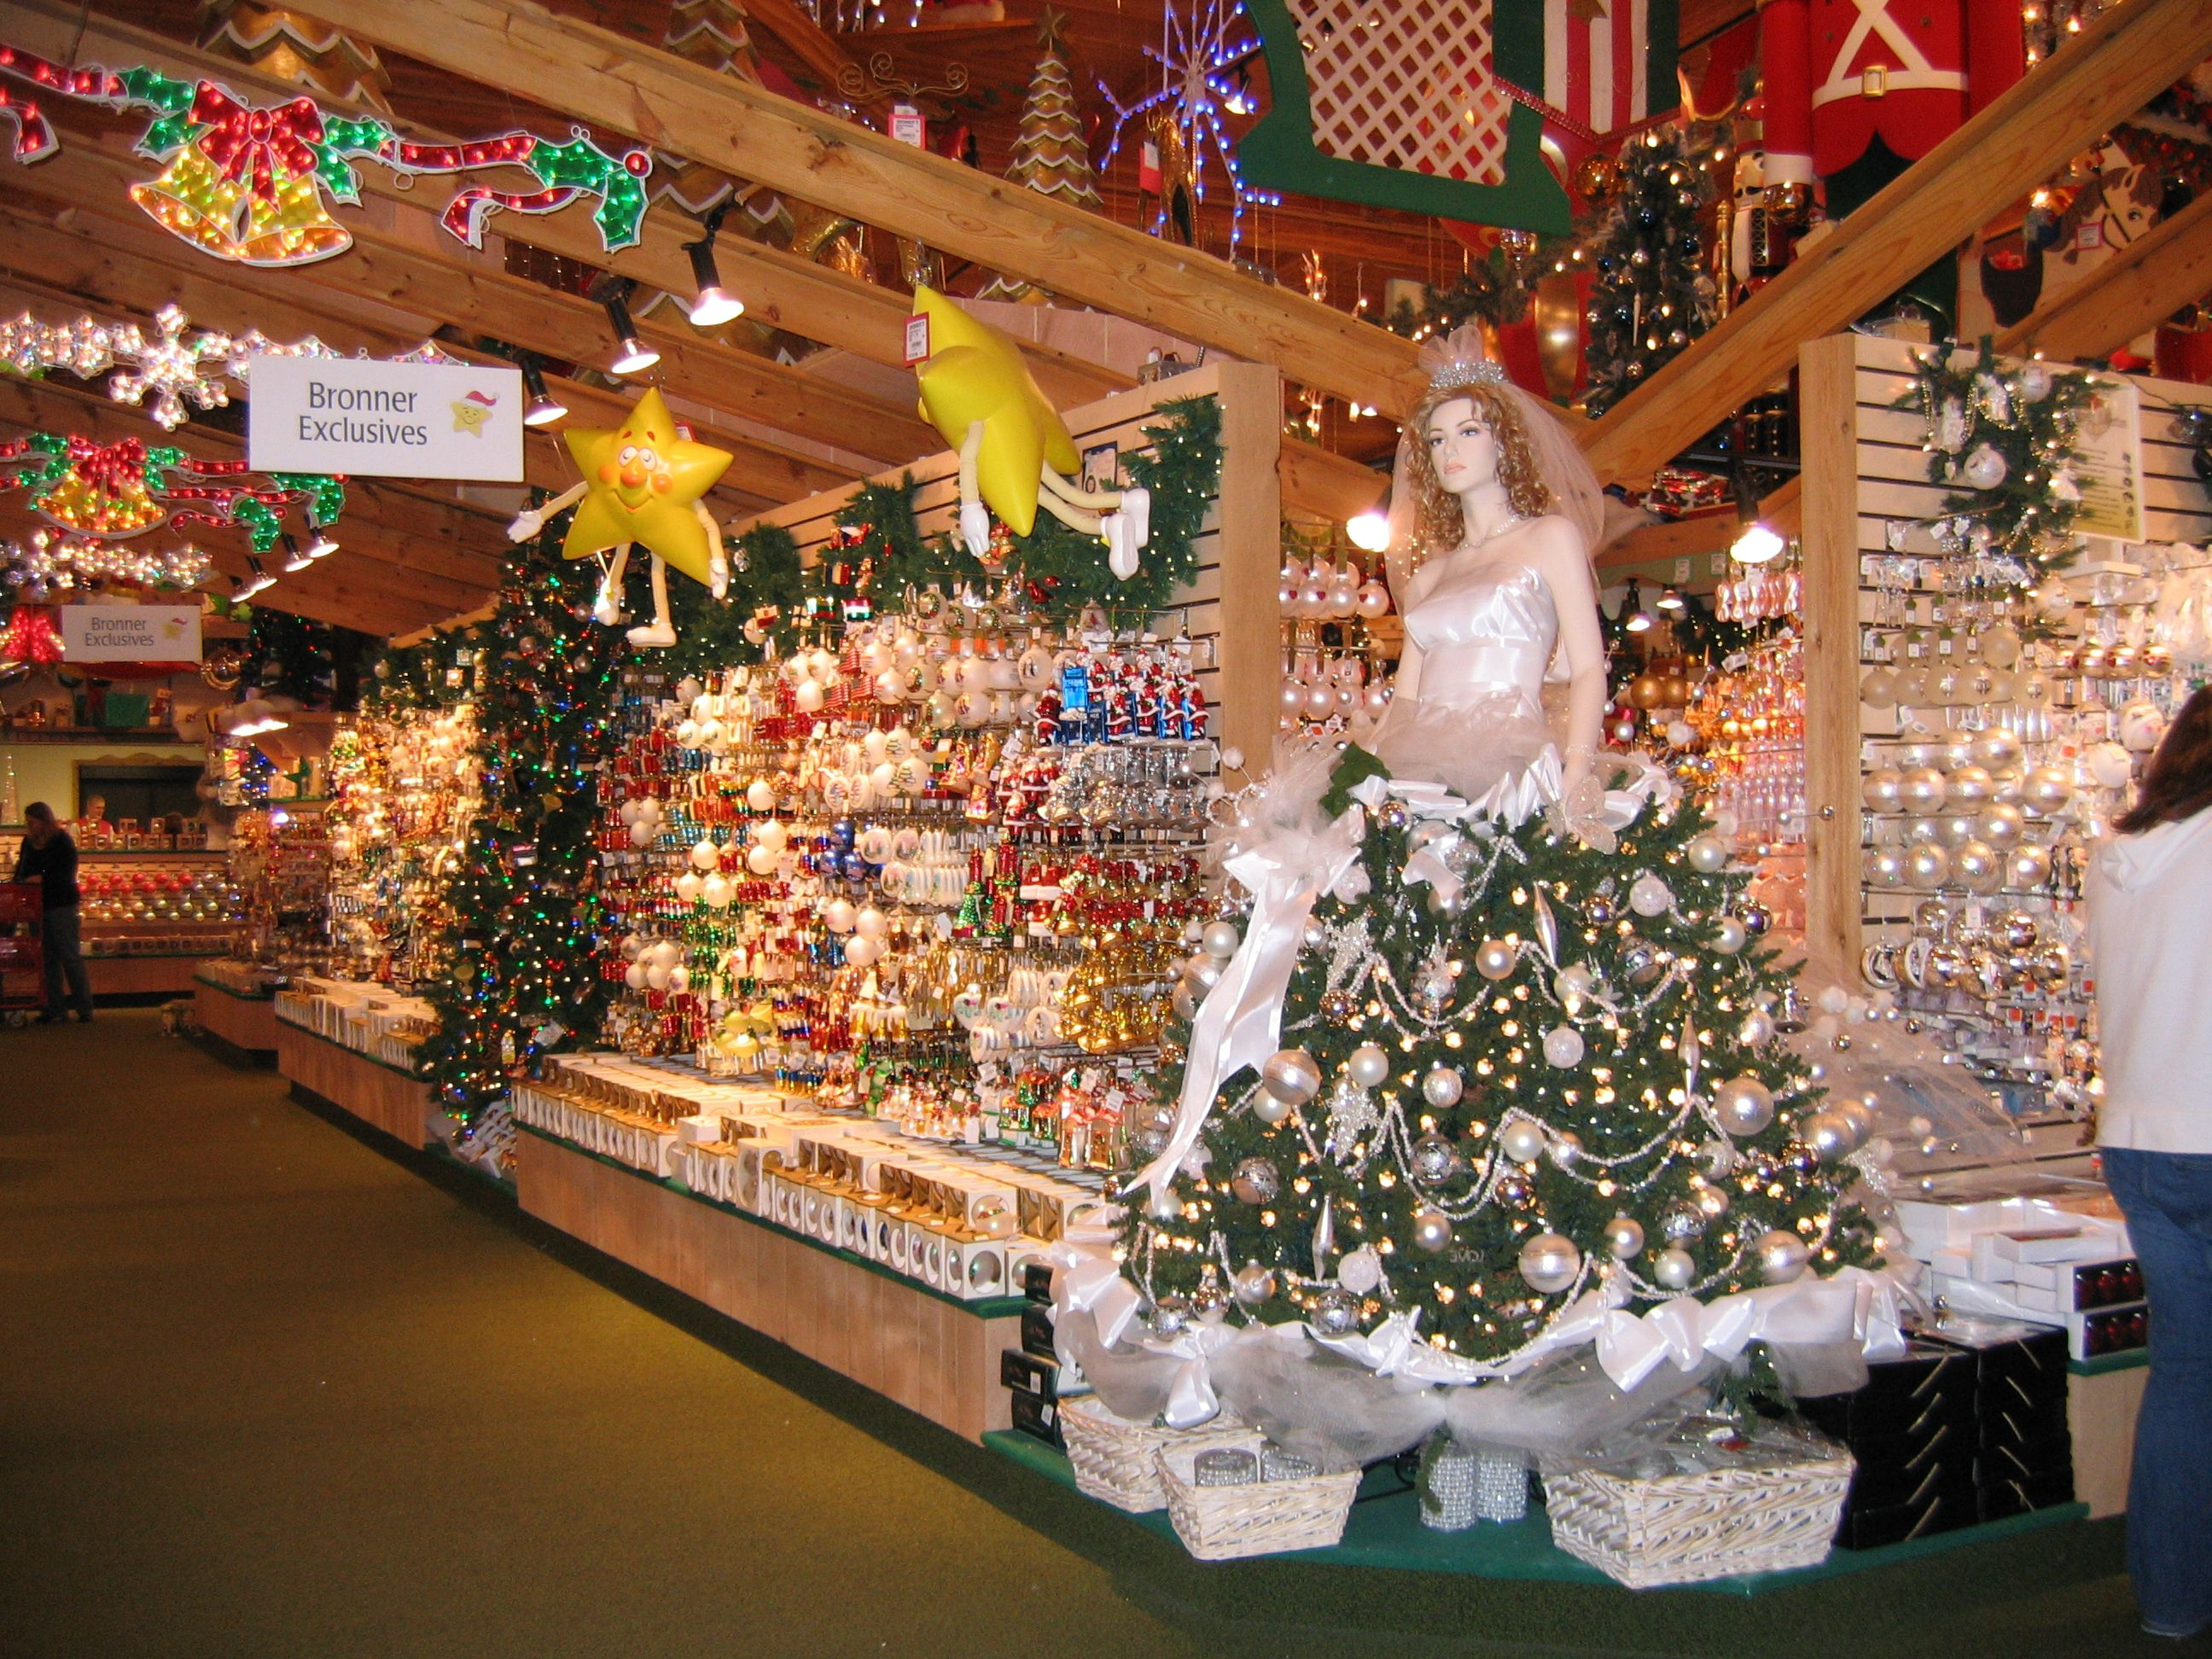 bronners the worlds largest christmas store has exclusive ornaments that you wont - Worlds Largest Christmas Store